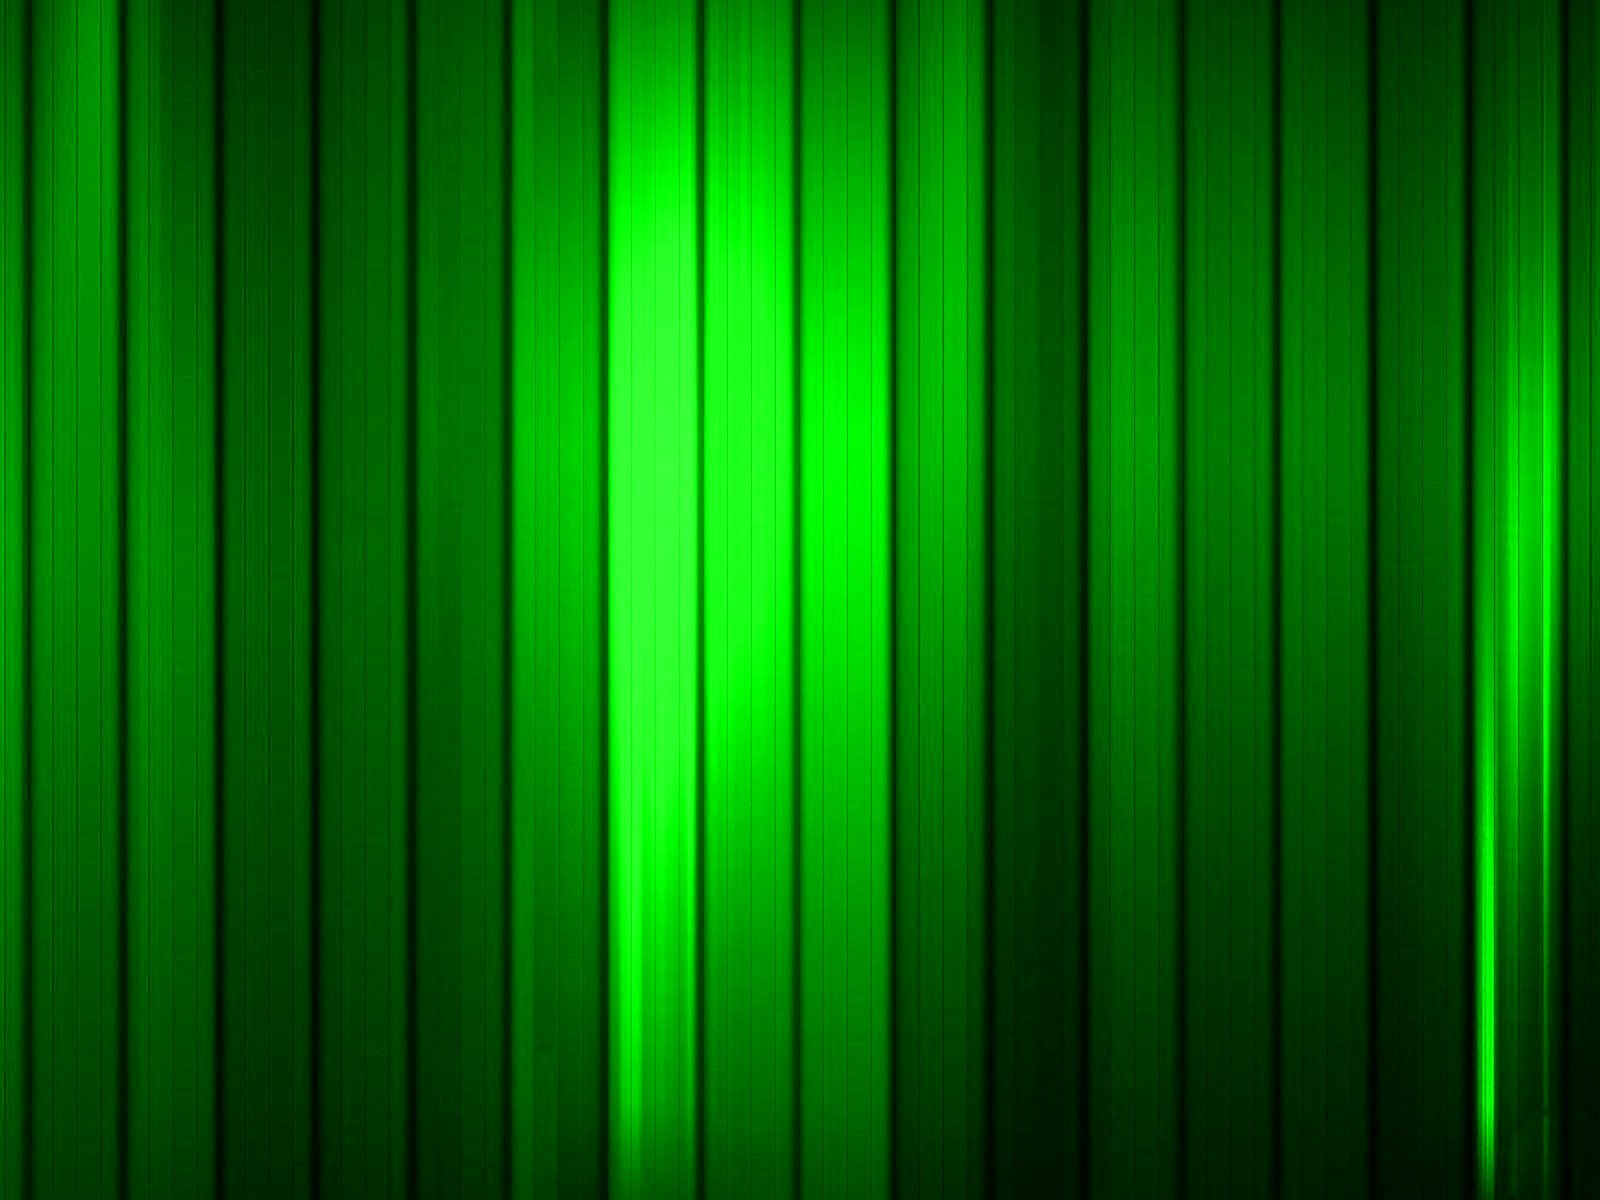 Download 32 Best HD Green Wallpapers of 2017 1600x1200